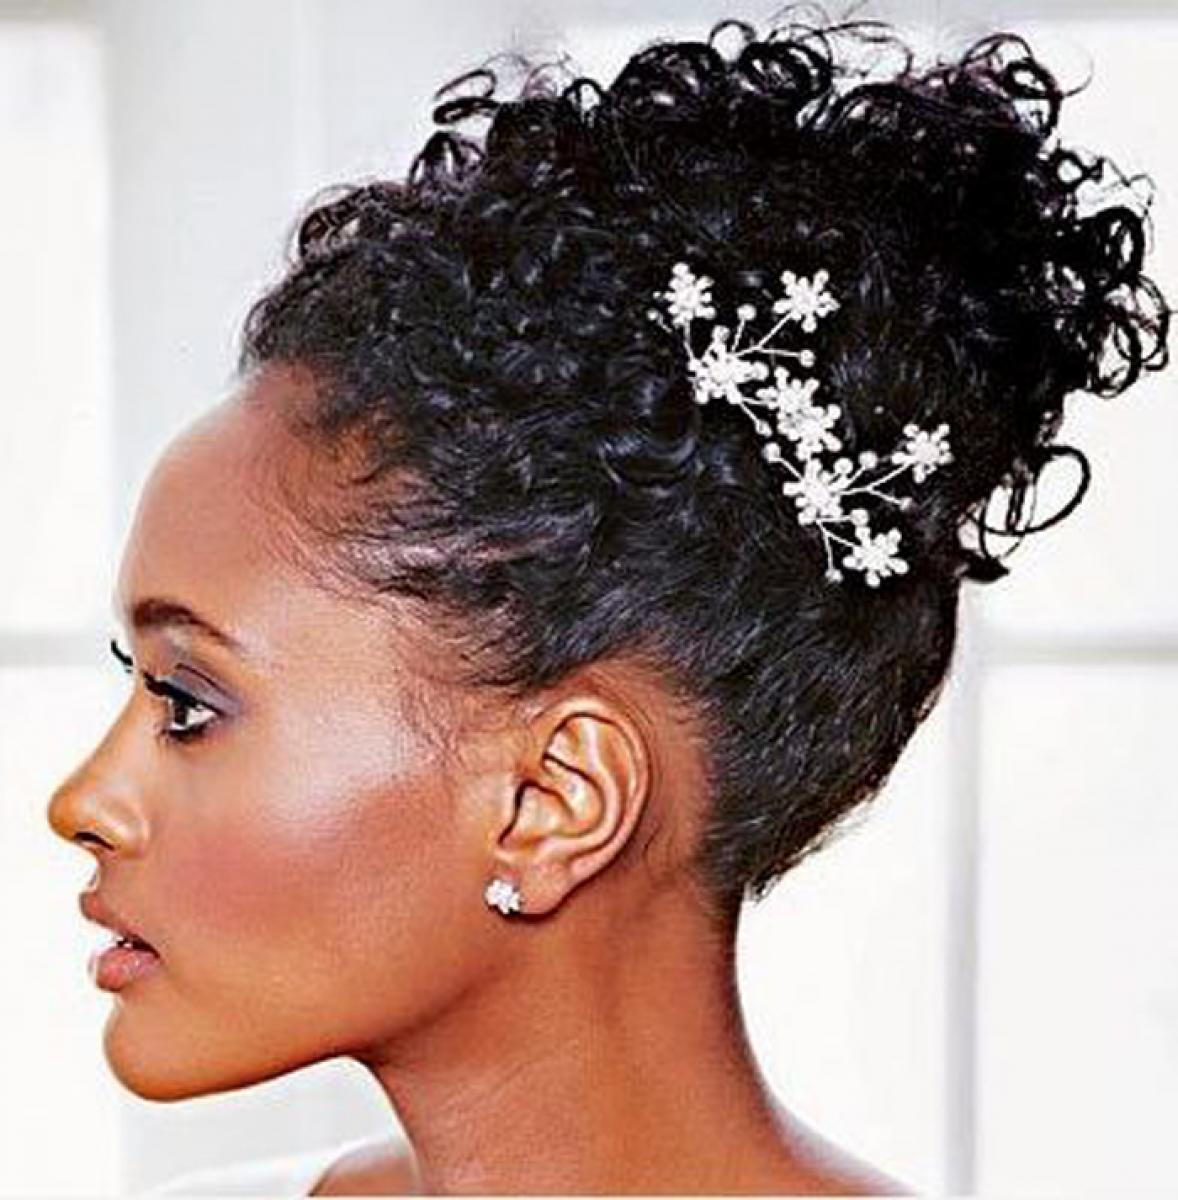 Surprising Pictures Of Braided Updo Hairstyles For Black Women Short Hairstyles Gunalazisus